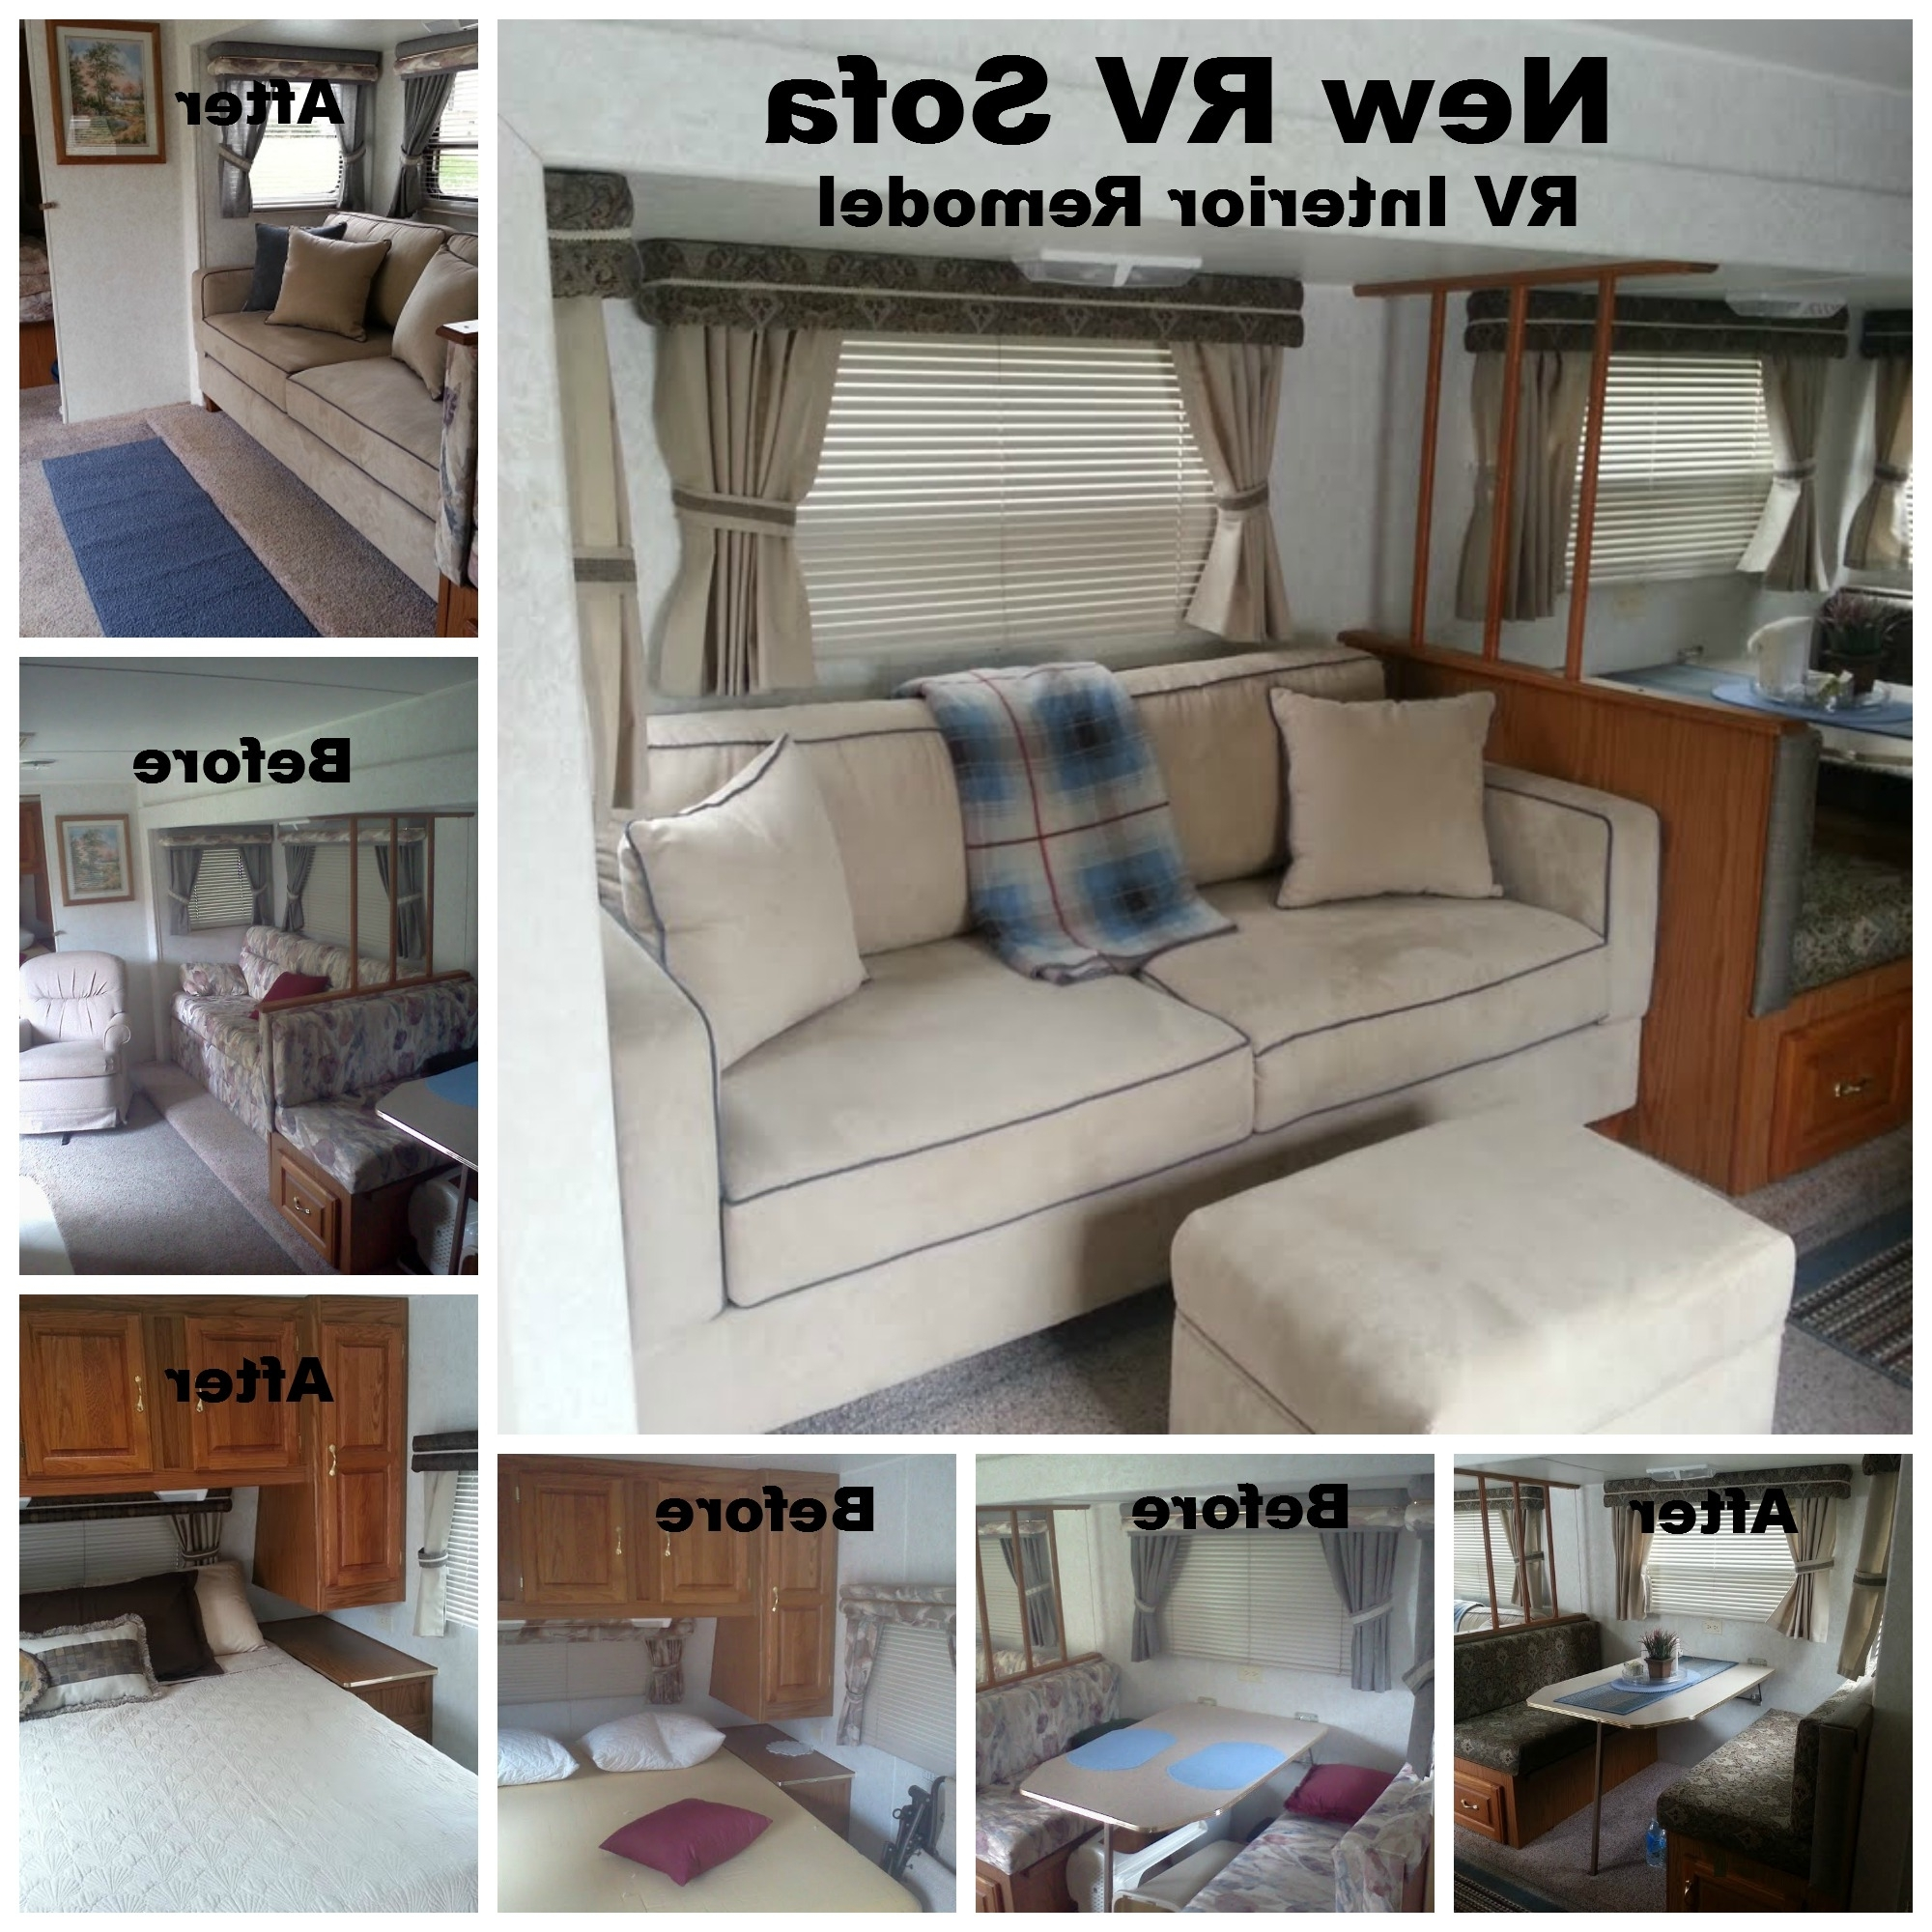 "Recent My Rv (1999 Jayco) Remodel With My New Sofa 72"" X 34"" Sofa Fit Throughout Sectional Sofas For Campers (View 6 of 15)"